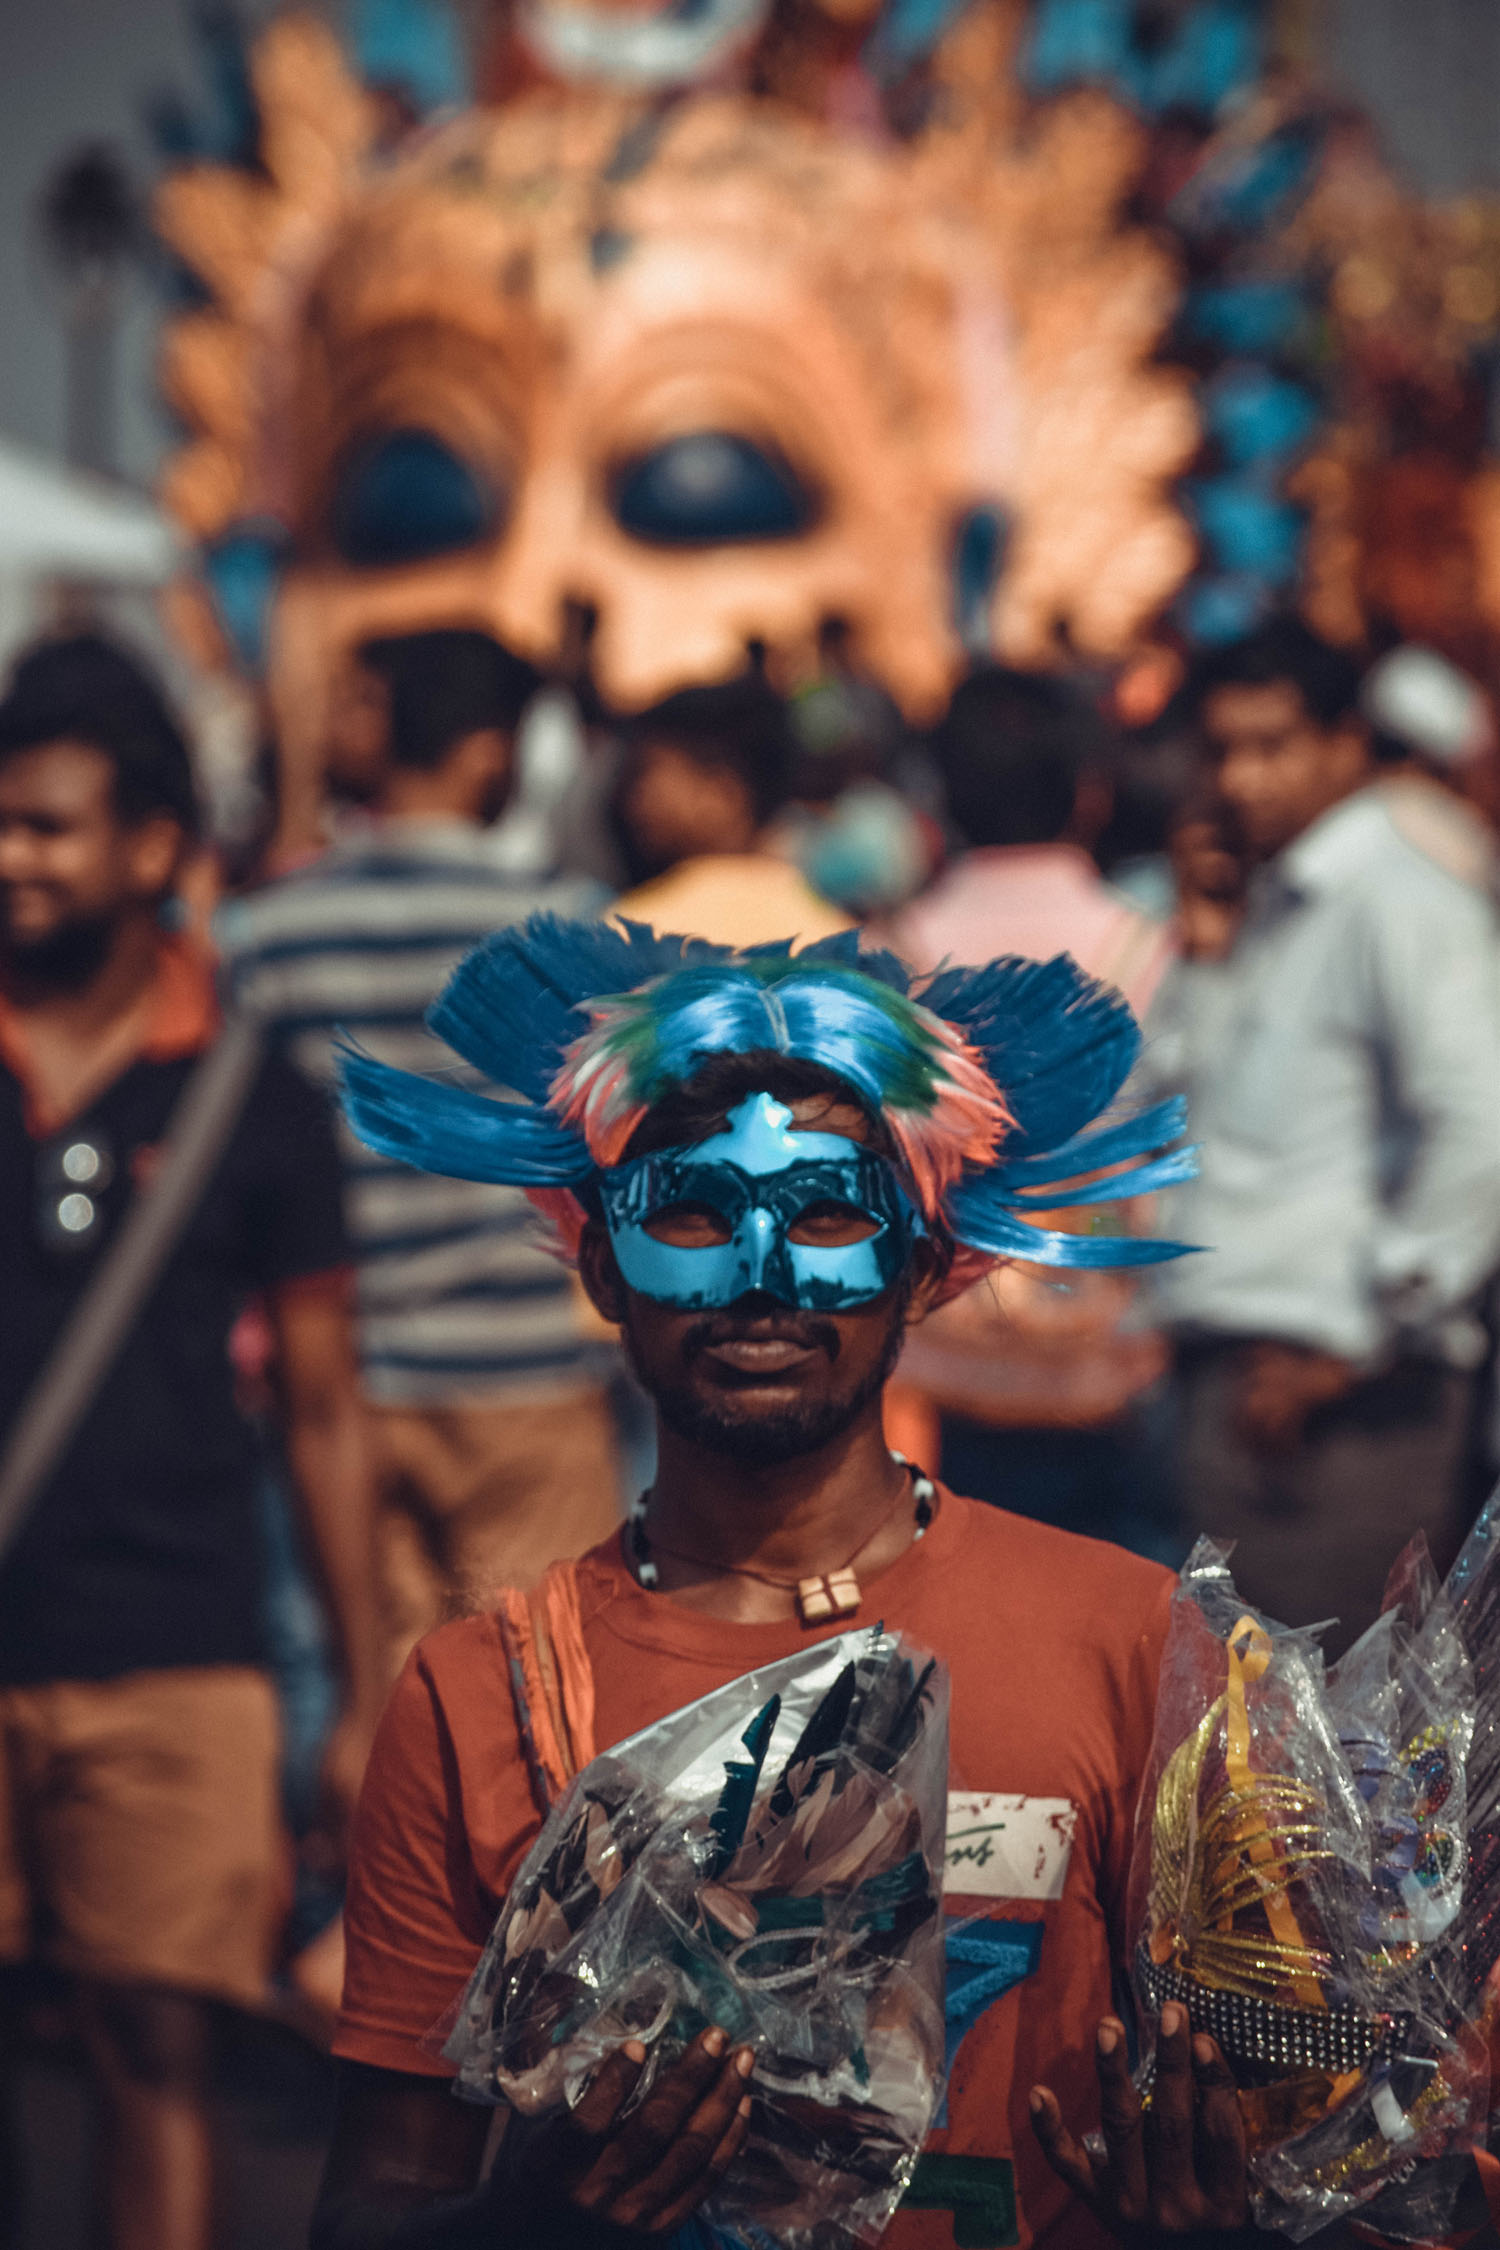 goa carnival festival, goa, free indian travel and stock photos